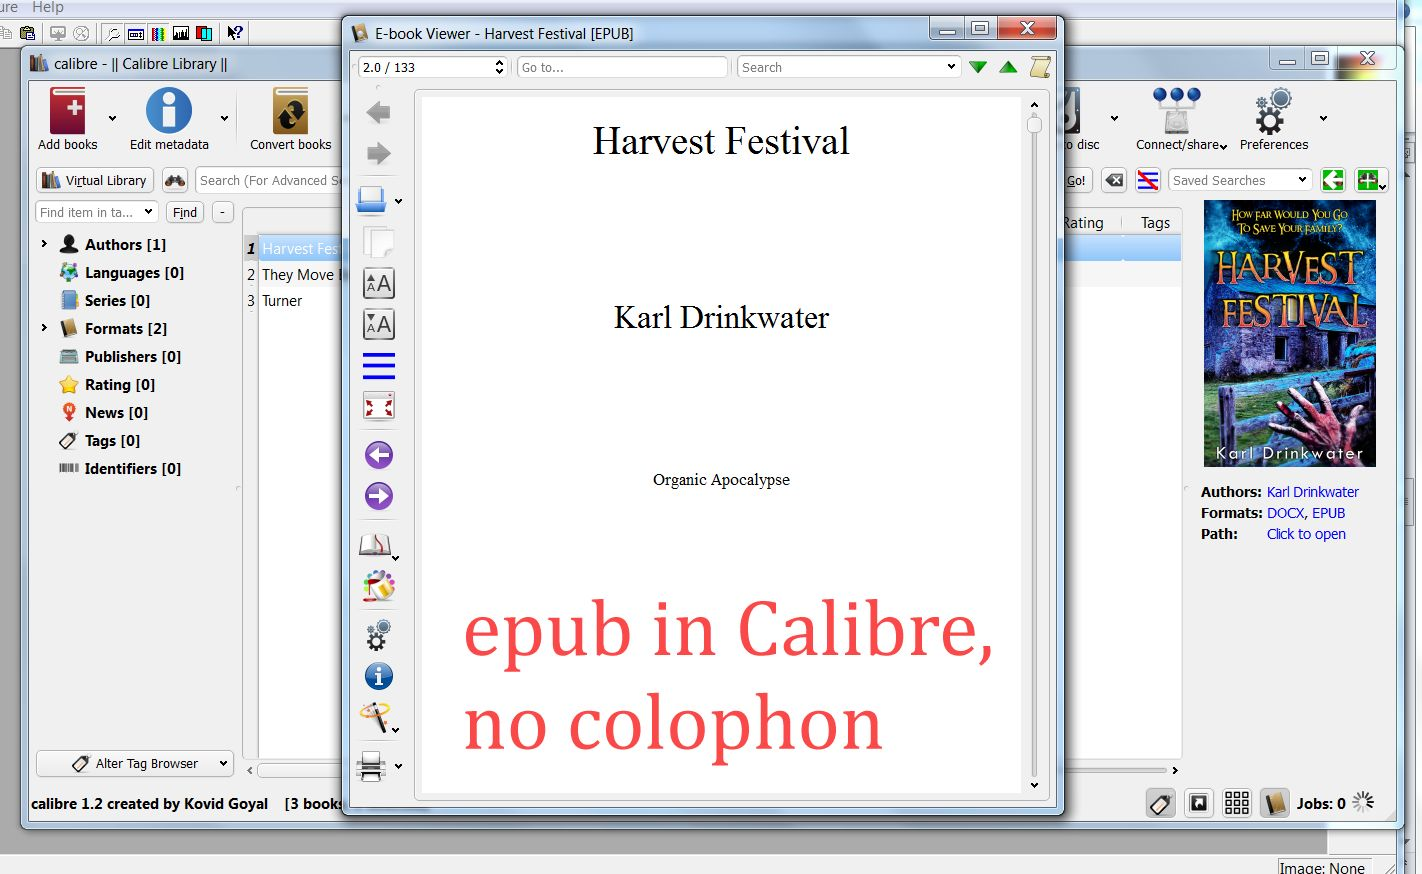 Image missing after conversion from docx to epub